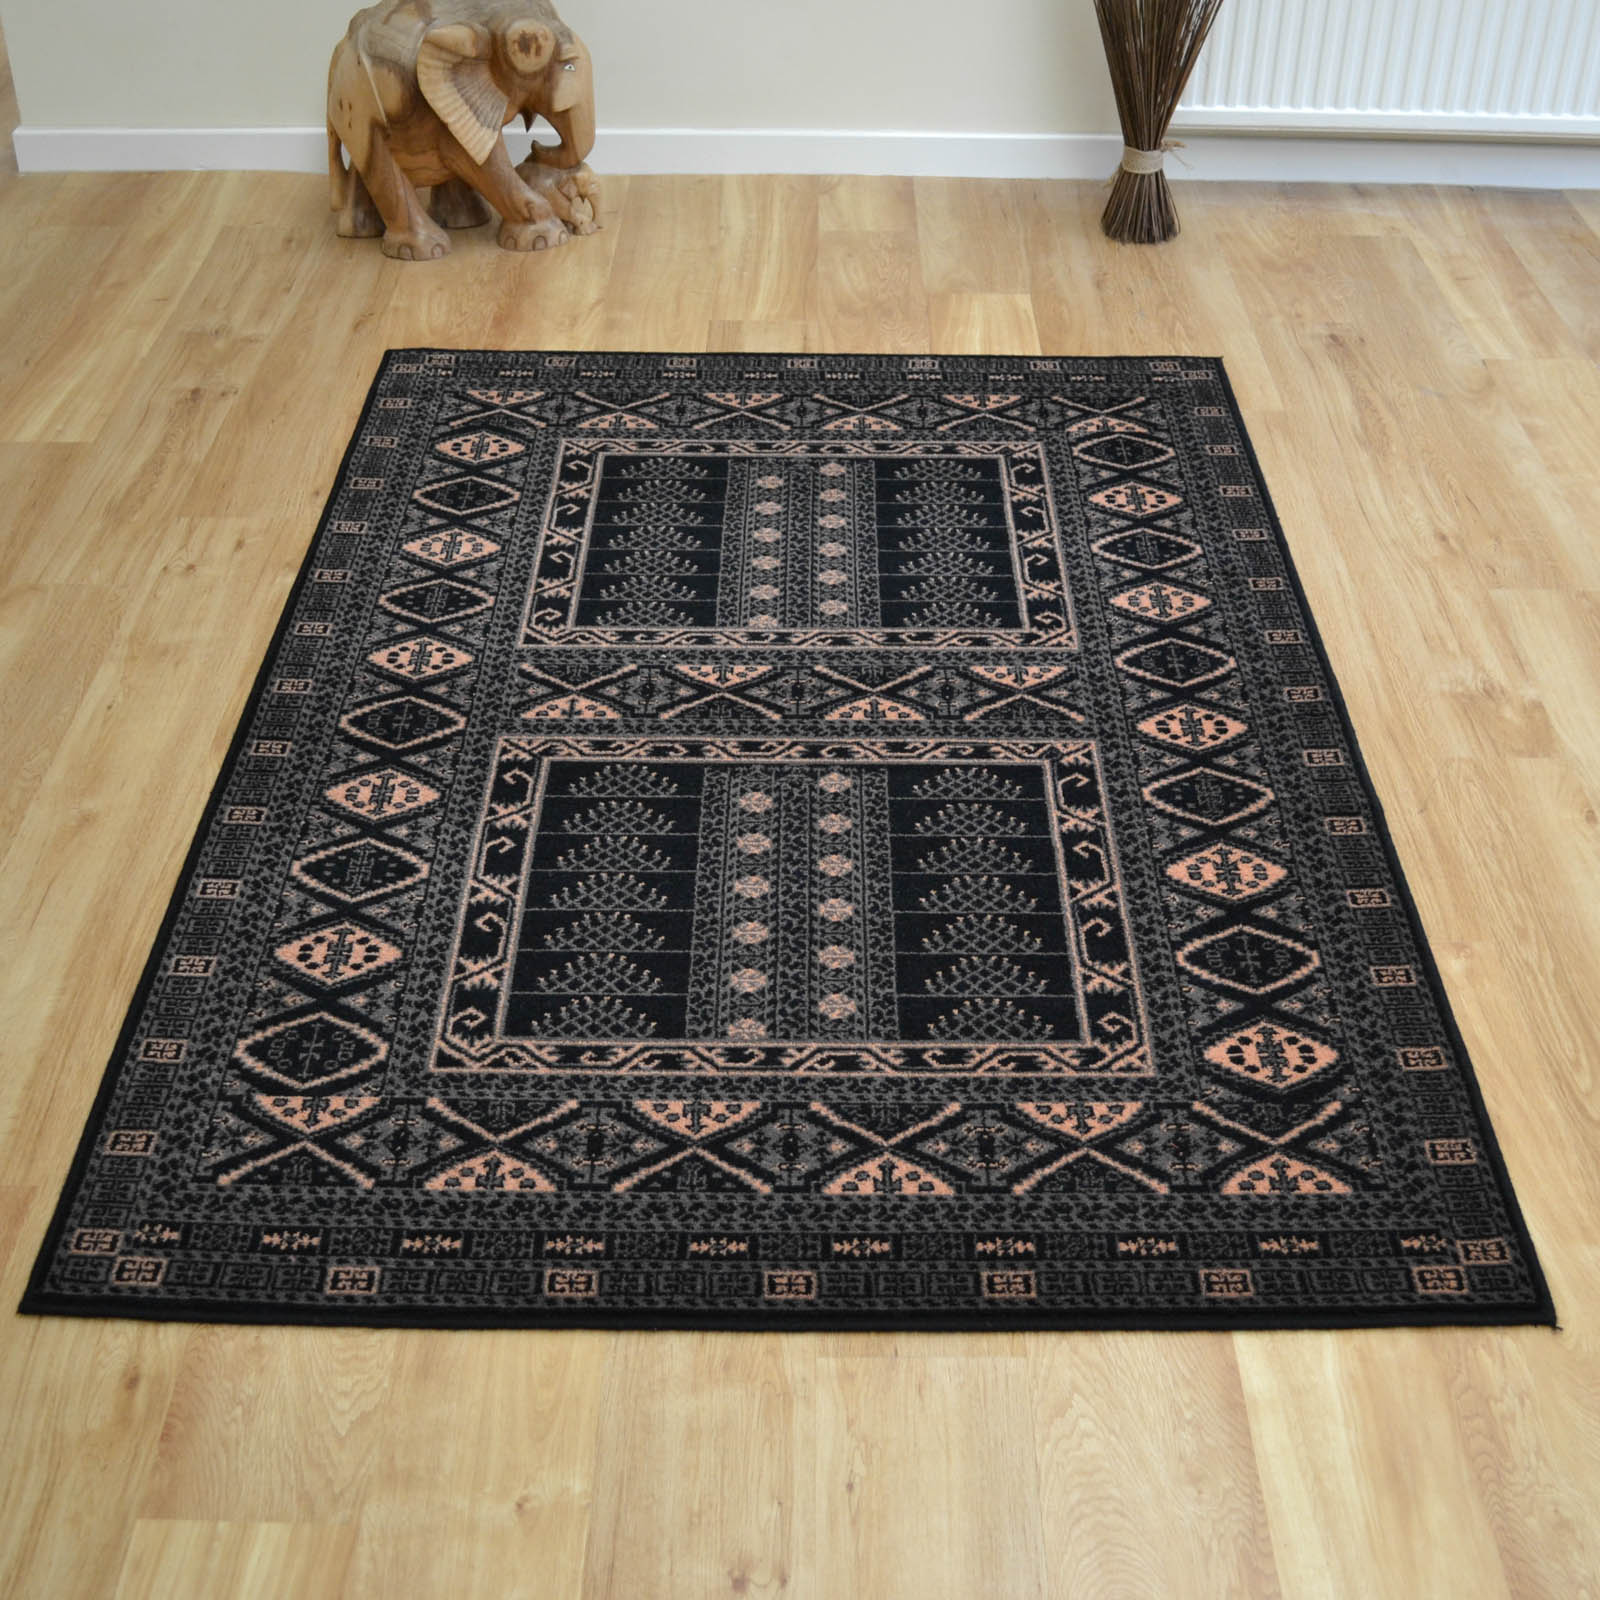 Afghan Rugs 7901 Traditional Wool in Black